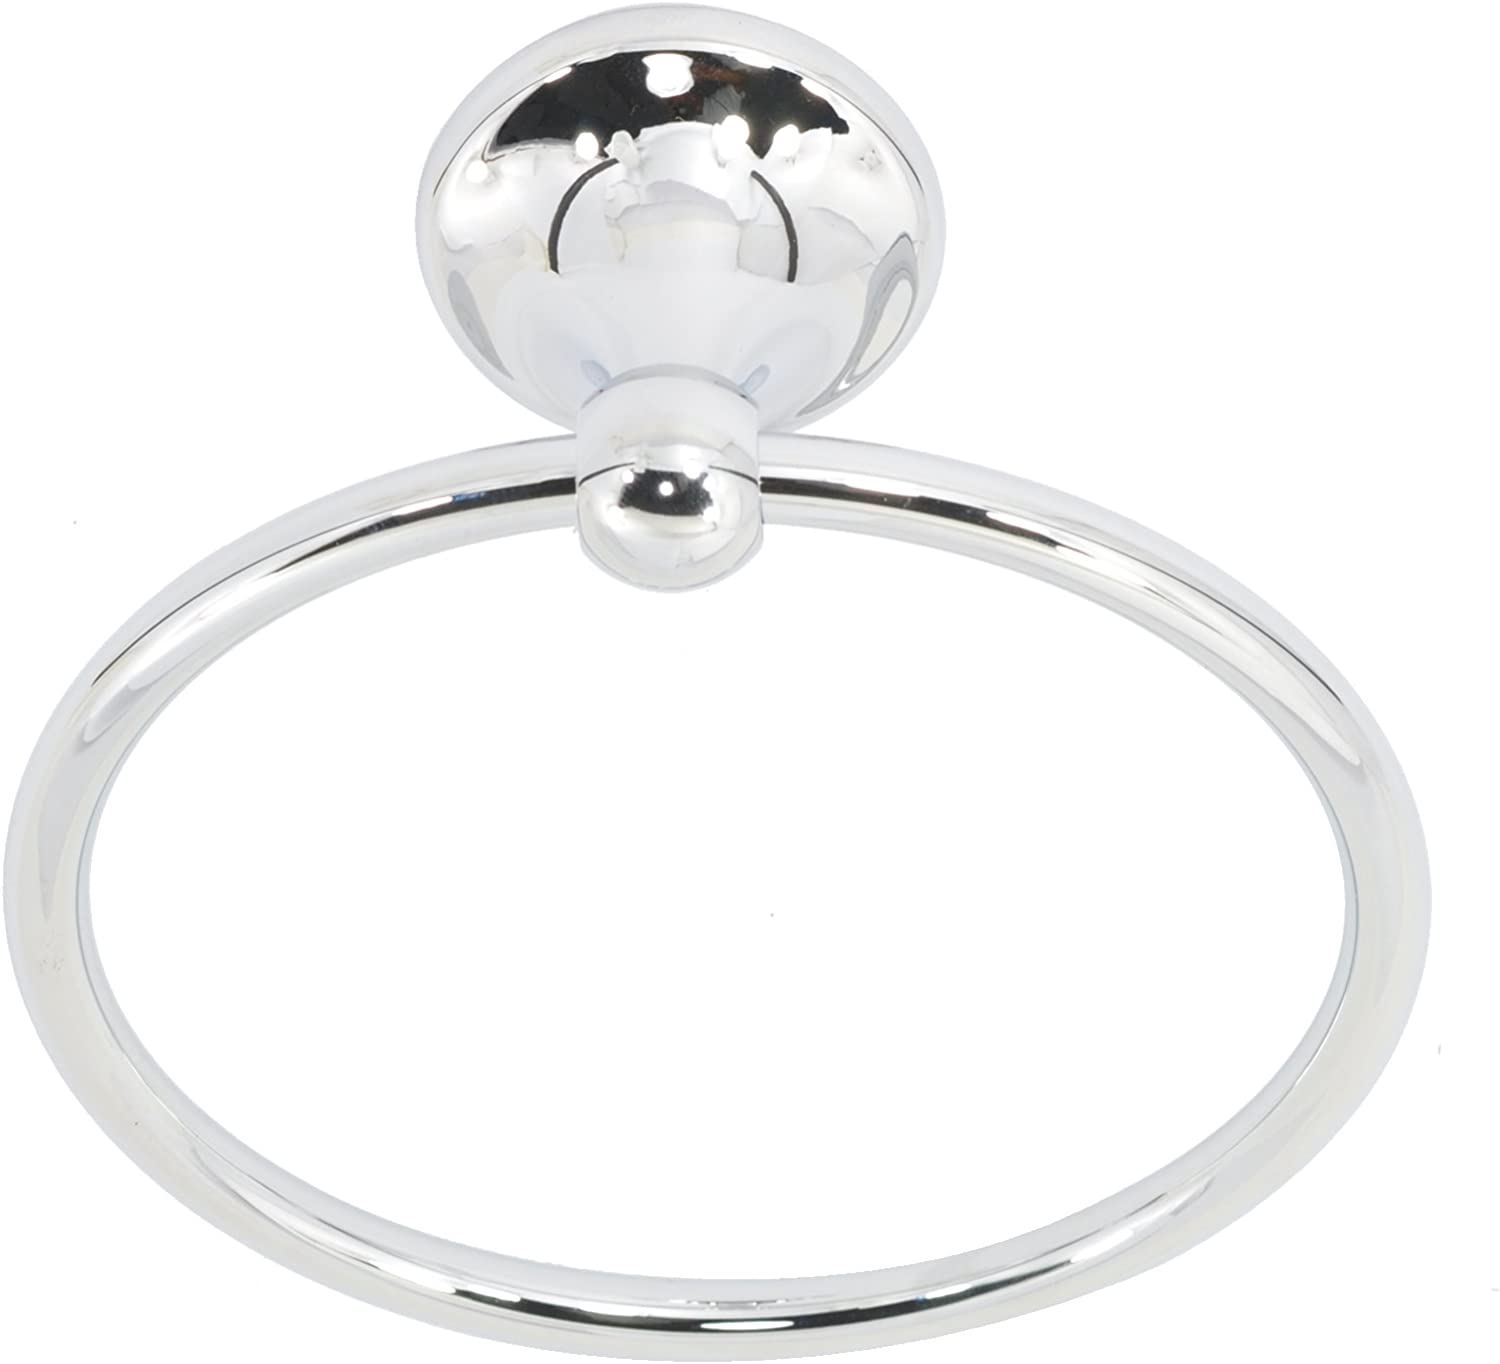 Better Home Products 8304 Waterfront Towel Ring, Chrome